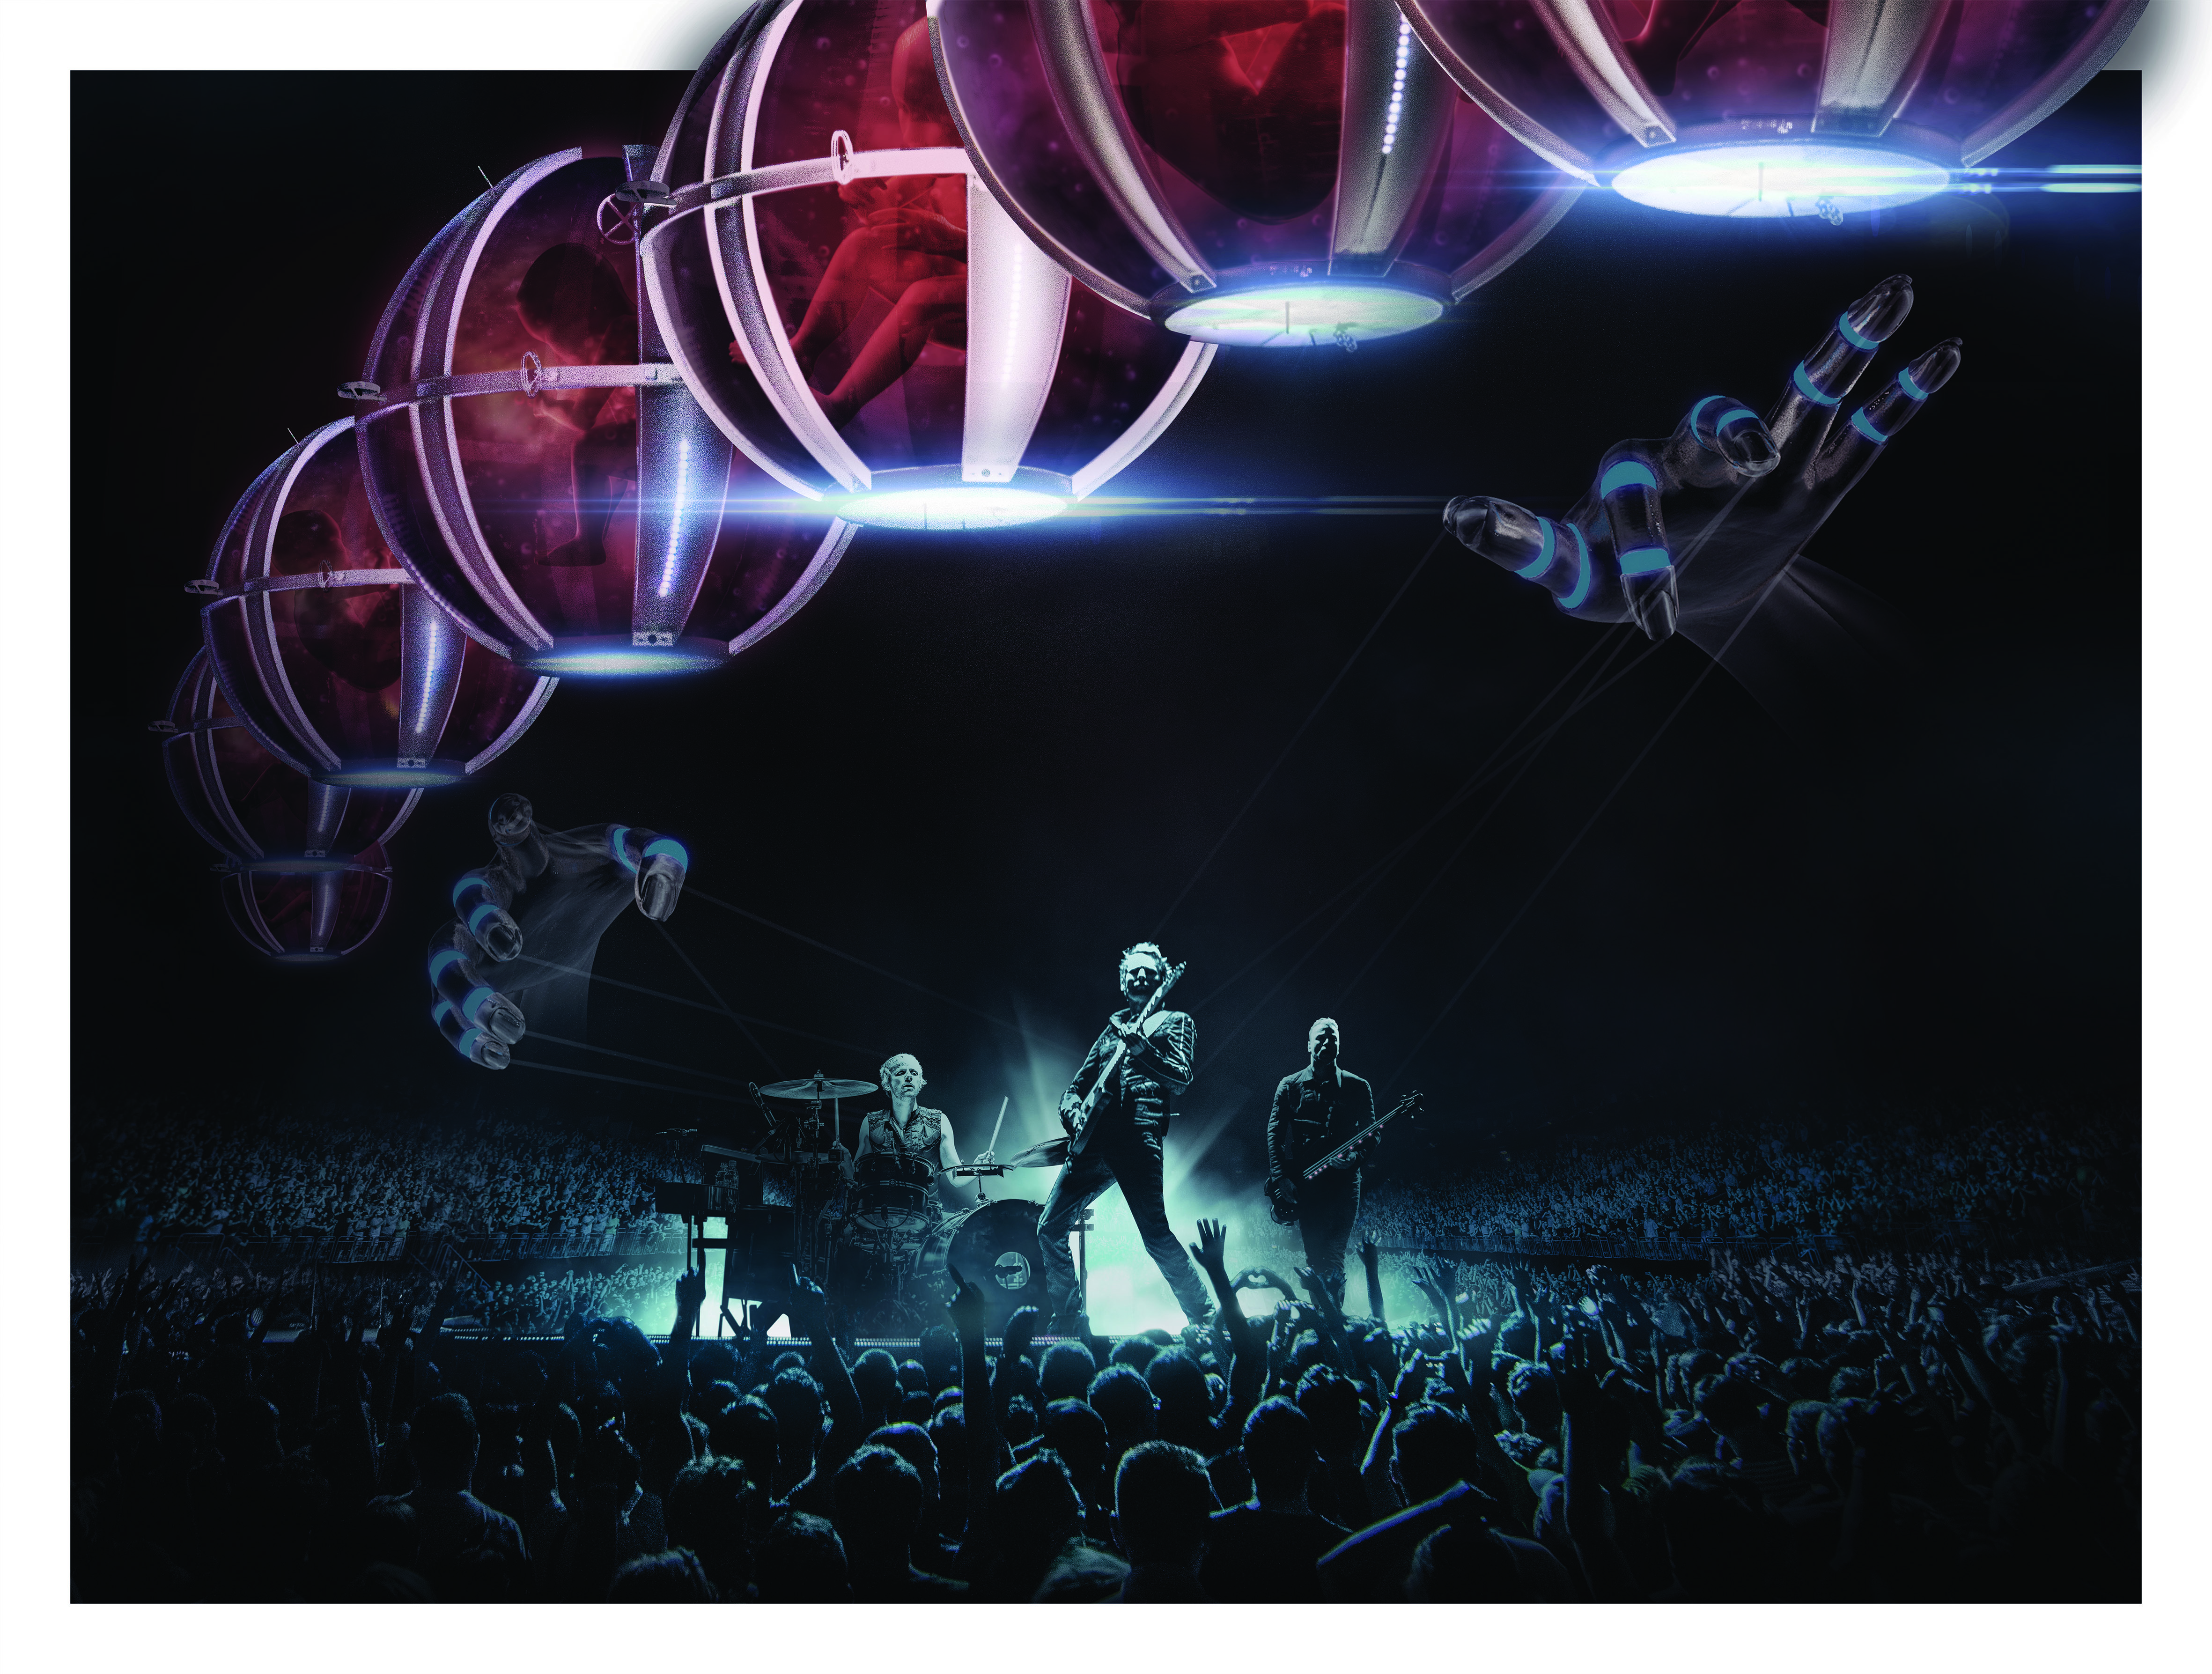 Paramount Presents: Muse Drones World Tour Broadcast in HD